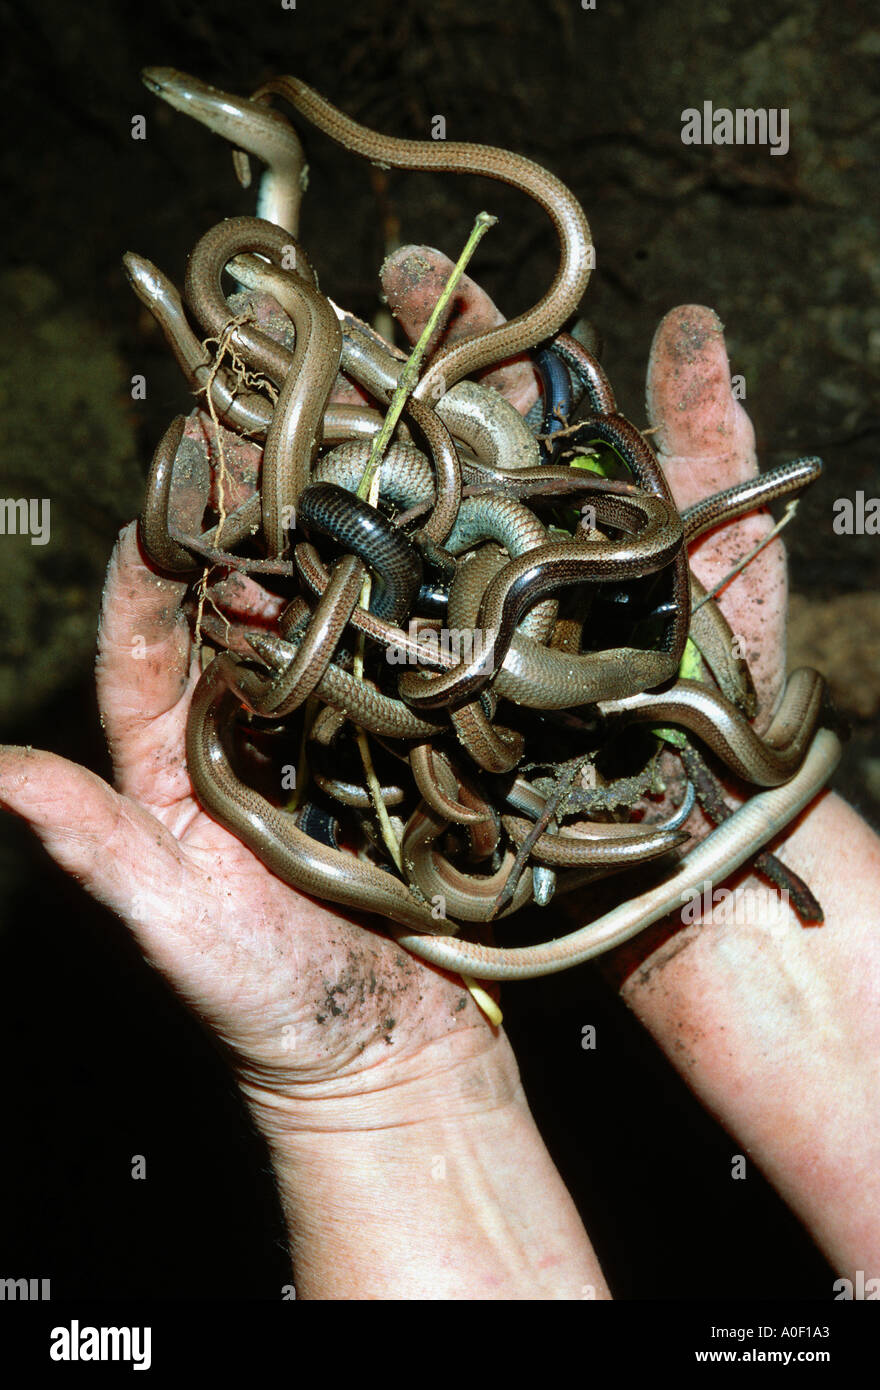 many slow worm worms two hands holding mass of slowworms Stock Photo